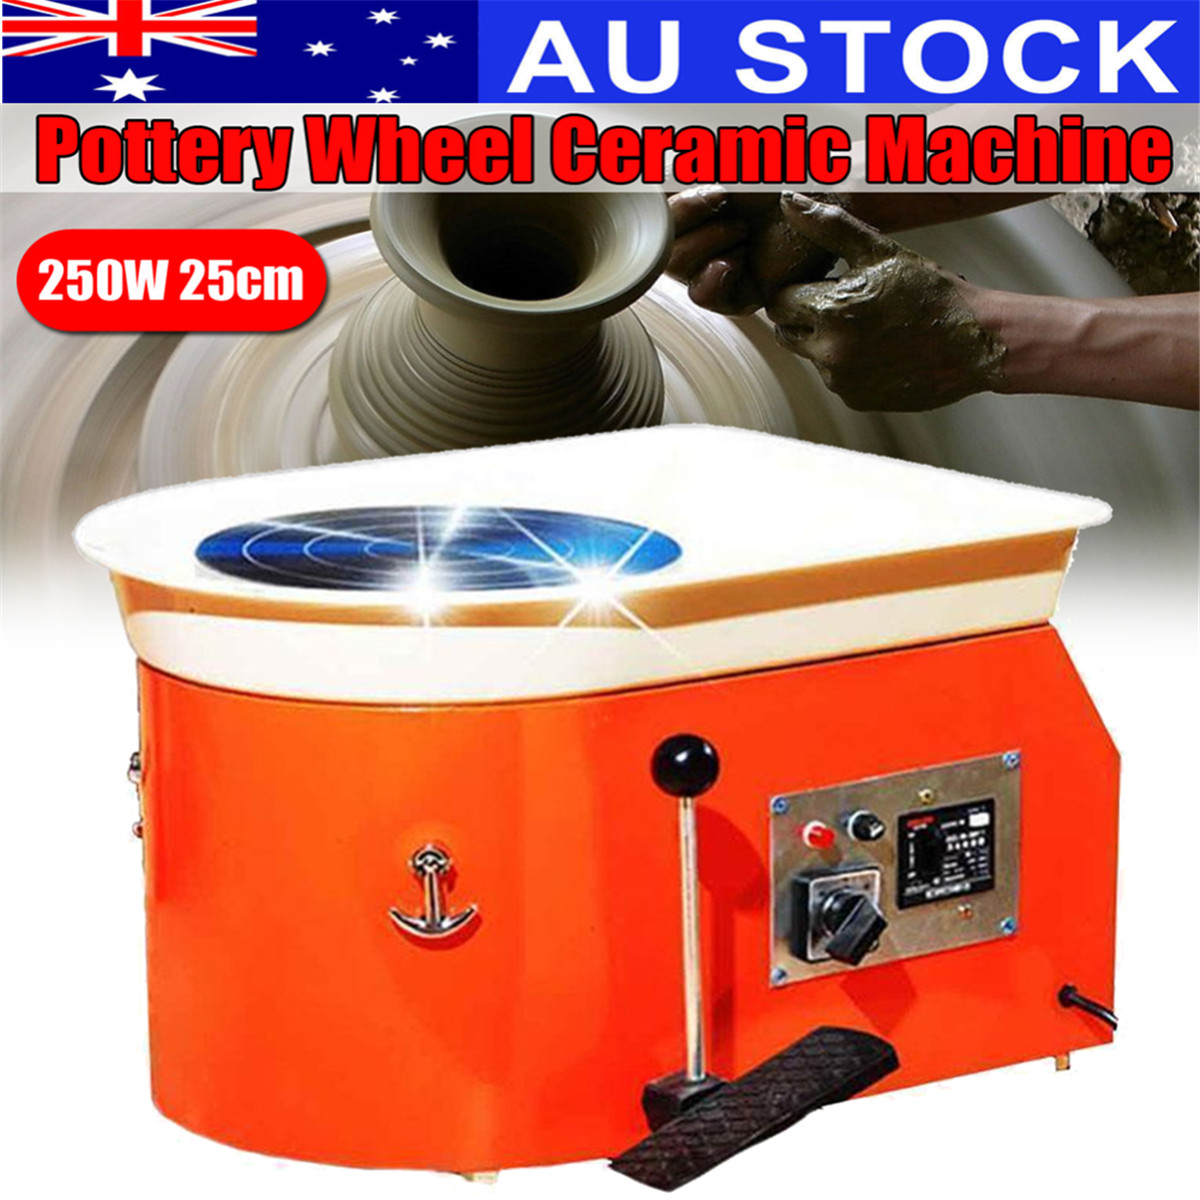 220V 250W Pottery Wheel Ceramic Machine Foot Pedal Ceramic Clay Art Mould For Ceramics Work Ship from AU